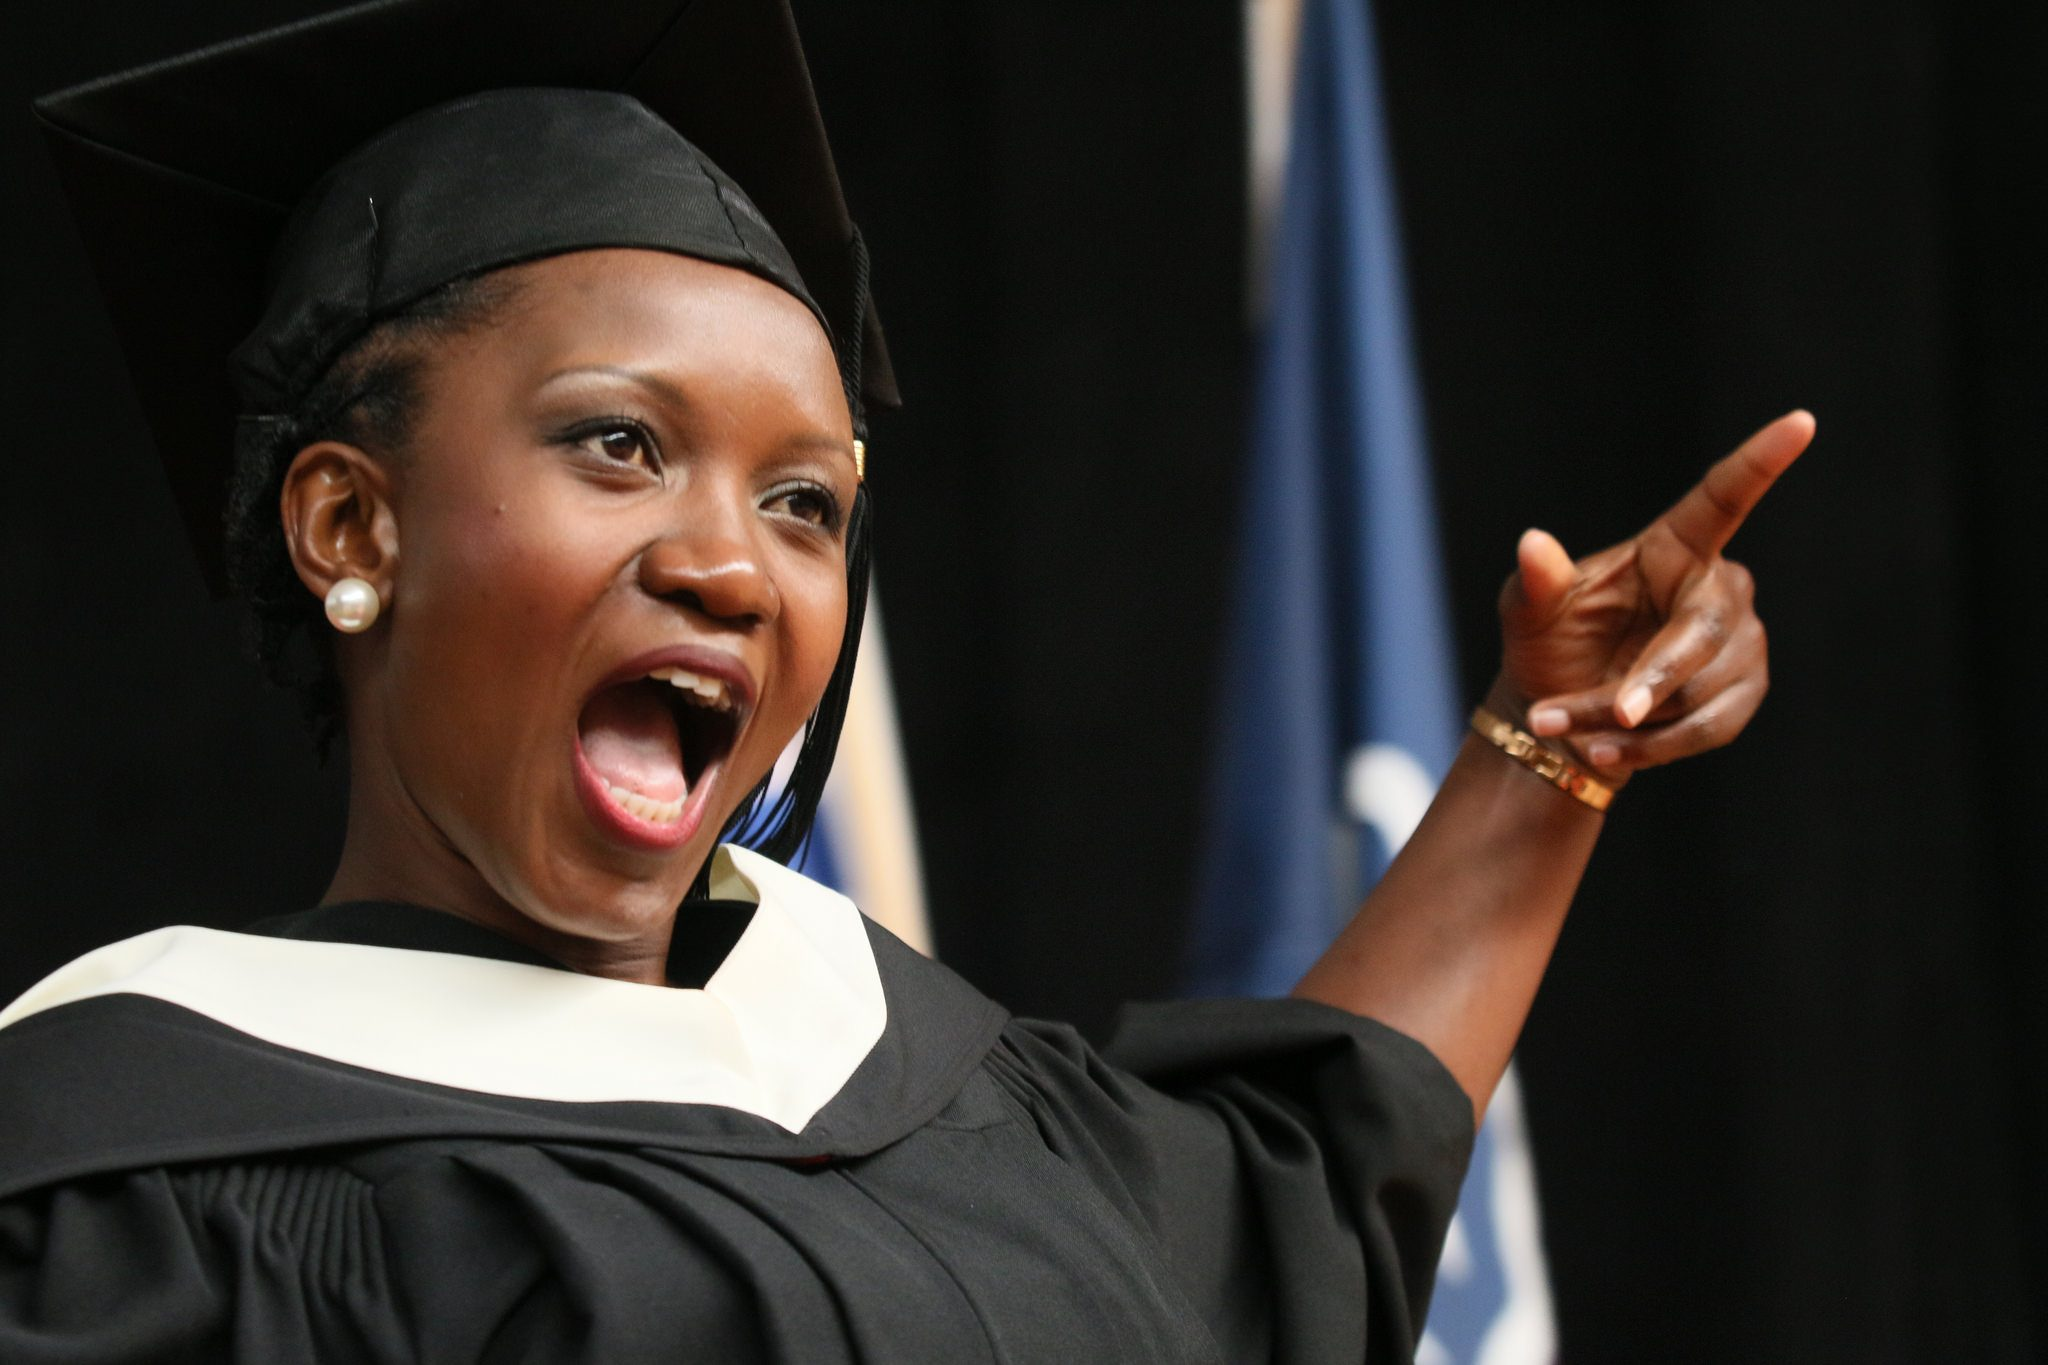 Convocation arts student cheer on stage